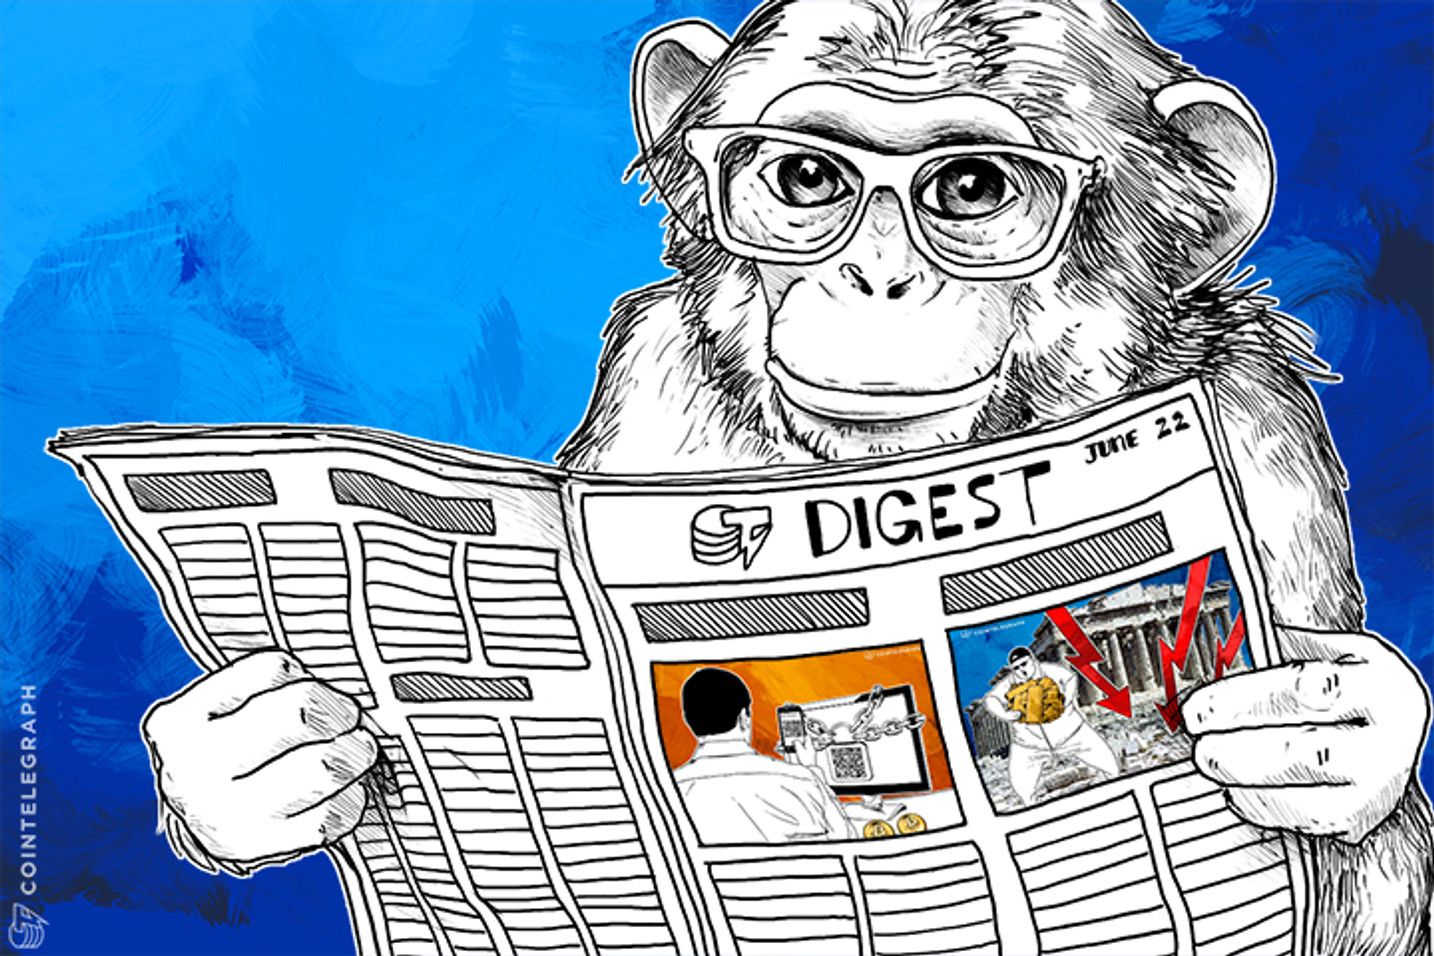 JUN 22 DIGEST: Bank of Indonesia Calls Bitcoin 'Digital Commodity,' SealsWithClubs Founder Set for Court Appearance